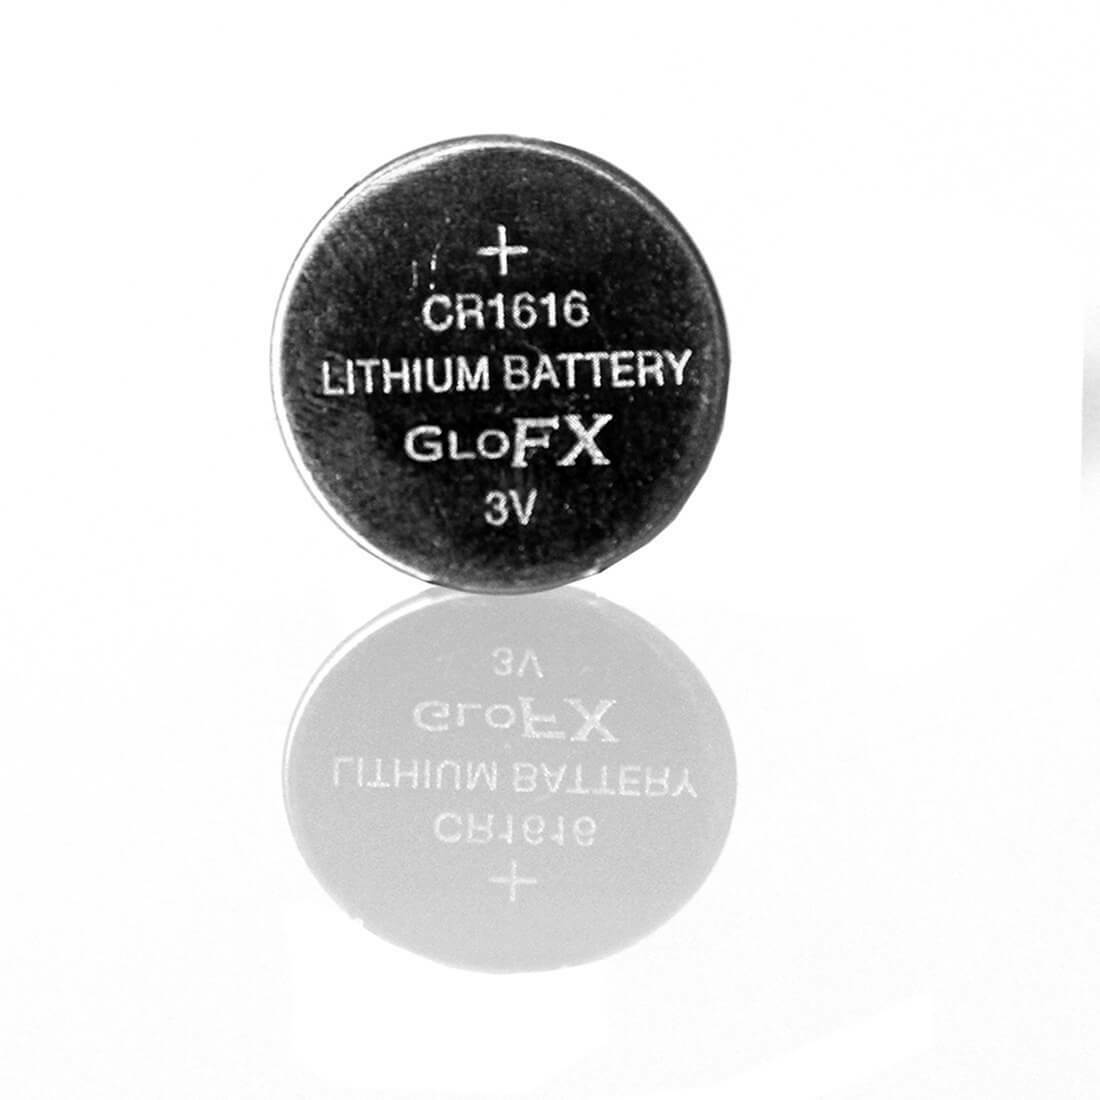 100 pack CR1616 Batteries Great for LED Gloves, Orbits, Small Electronics